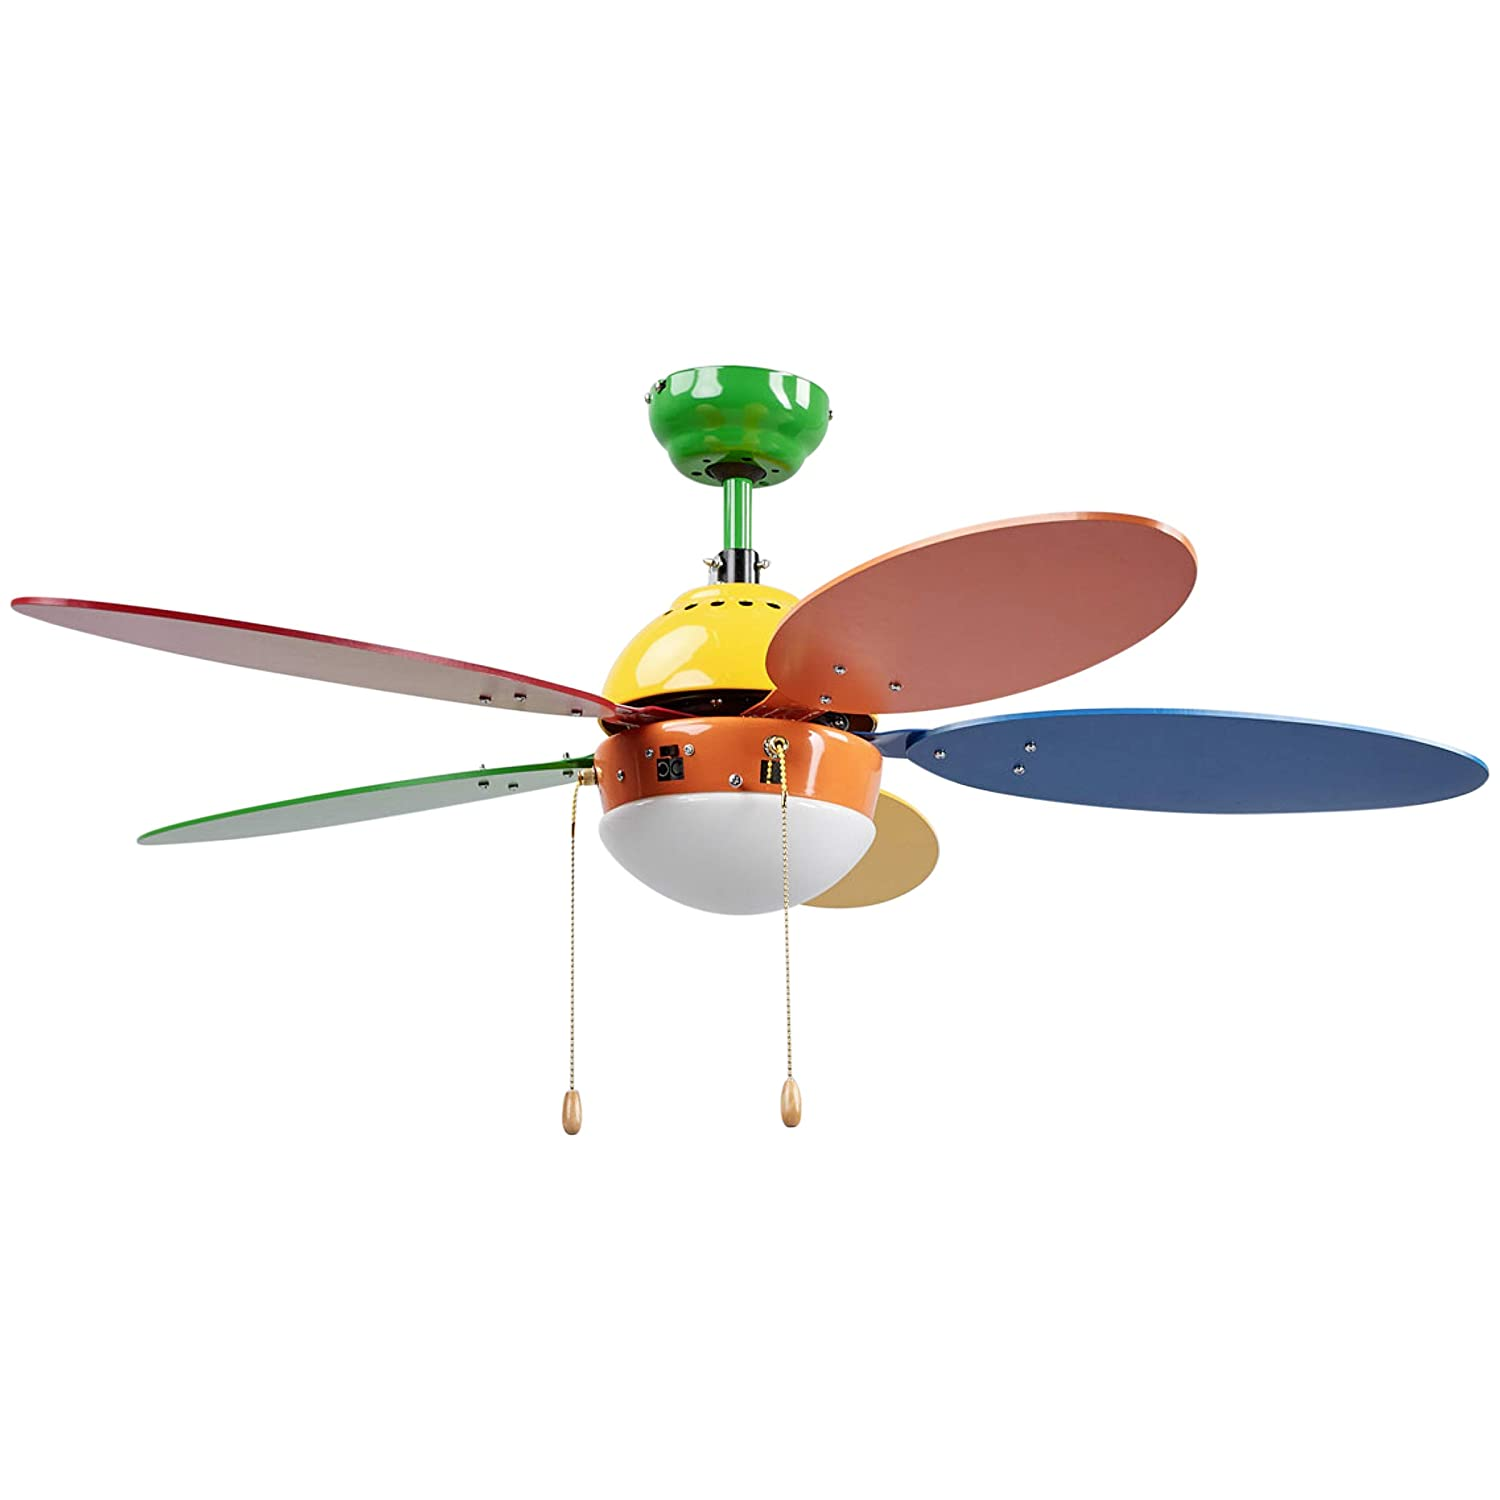 Ceiling Fans with Lighting'Corinna' (for Children, Young Lifestyle) in Multi-Colored Made of Wood for e.g. Children's Room (1 Light Source, E14, A++) from Lampenwelt Young Lifestyle) in Multi-Colored Made of Wood for e.g. Children' s Room (1 Light Sour